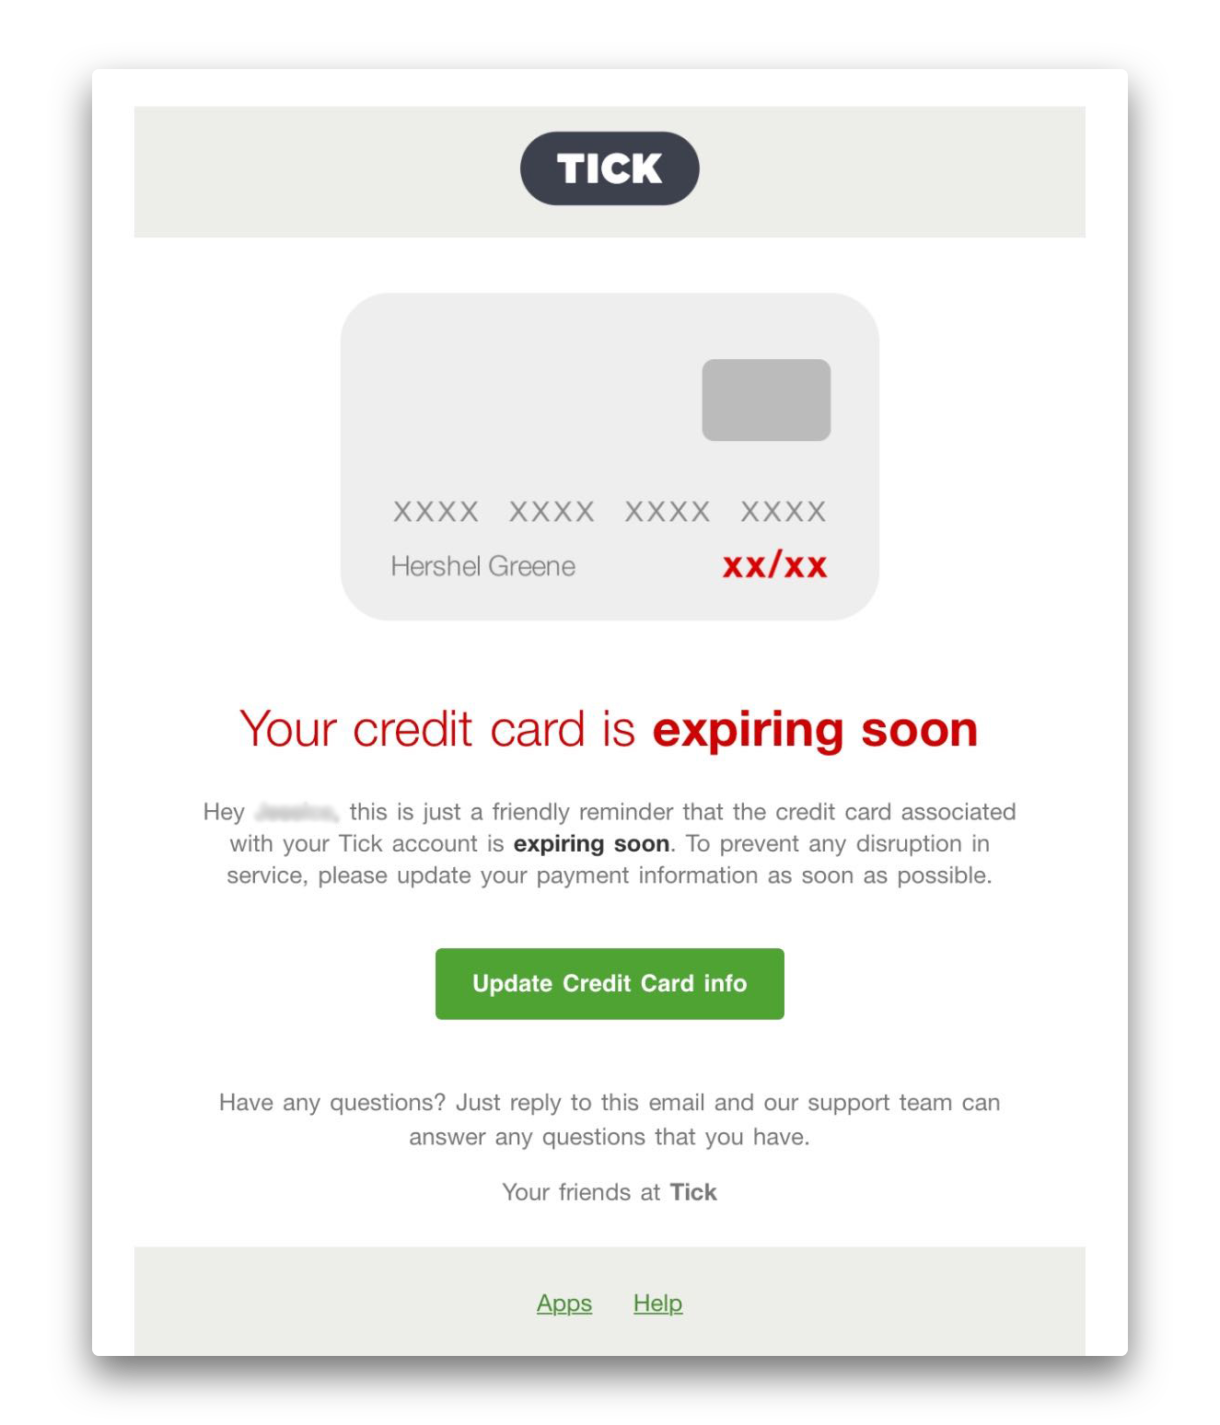 Image of an email from Tick